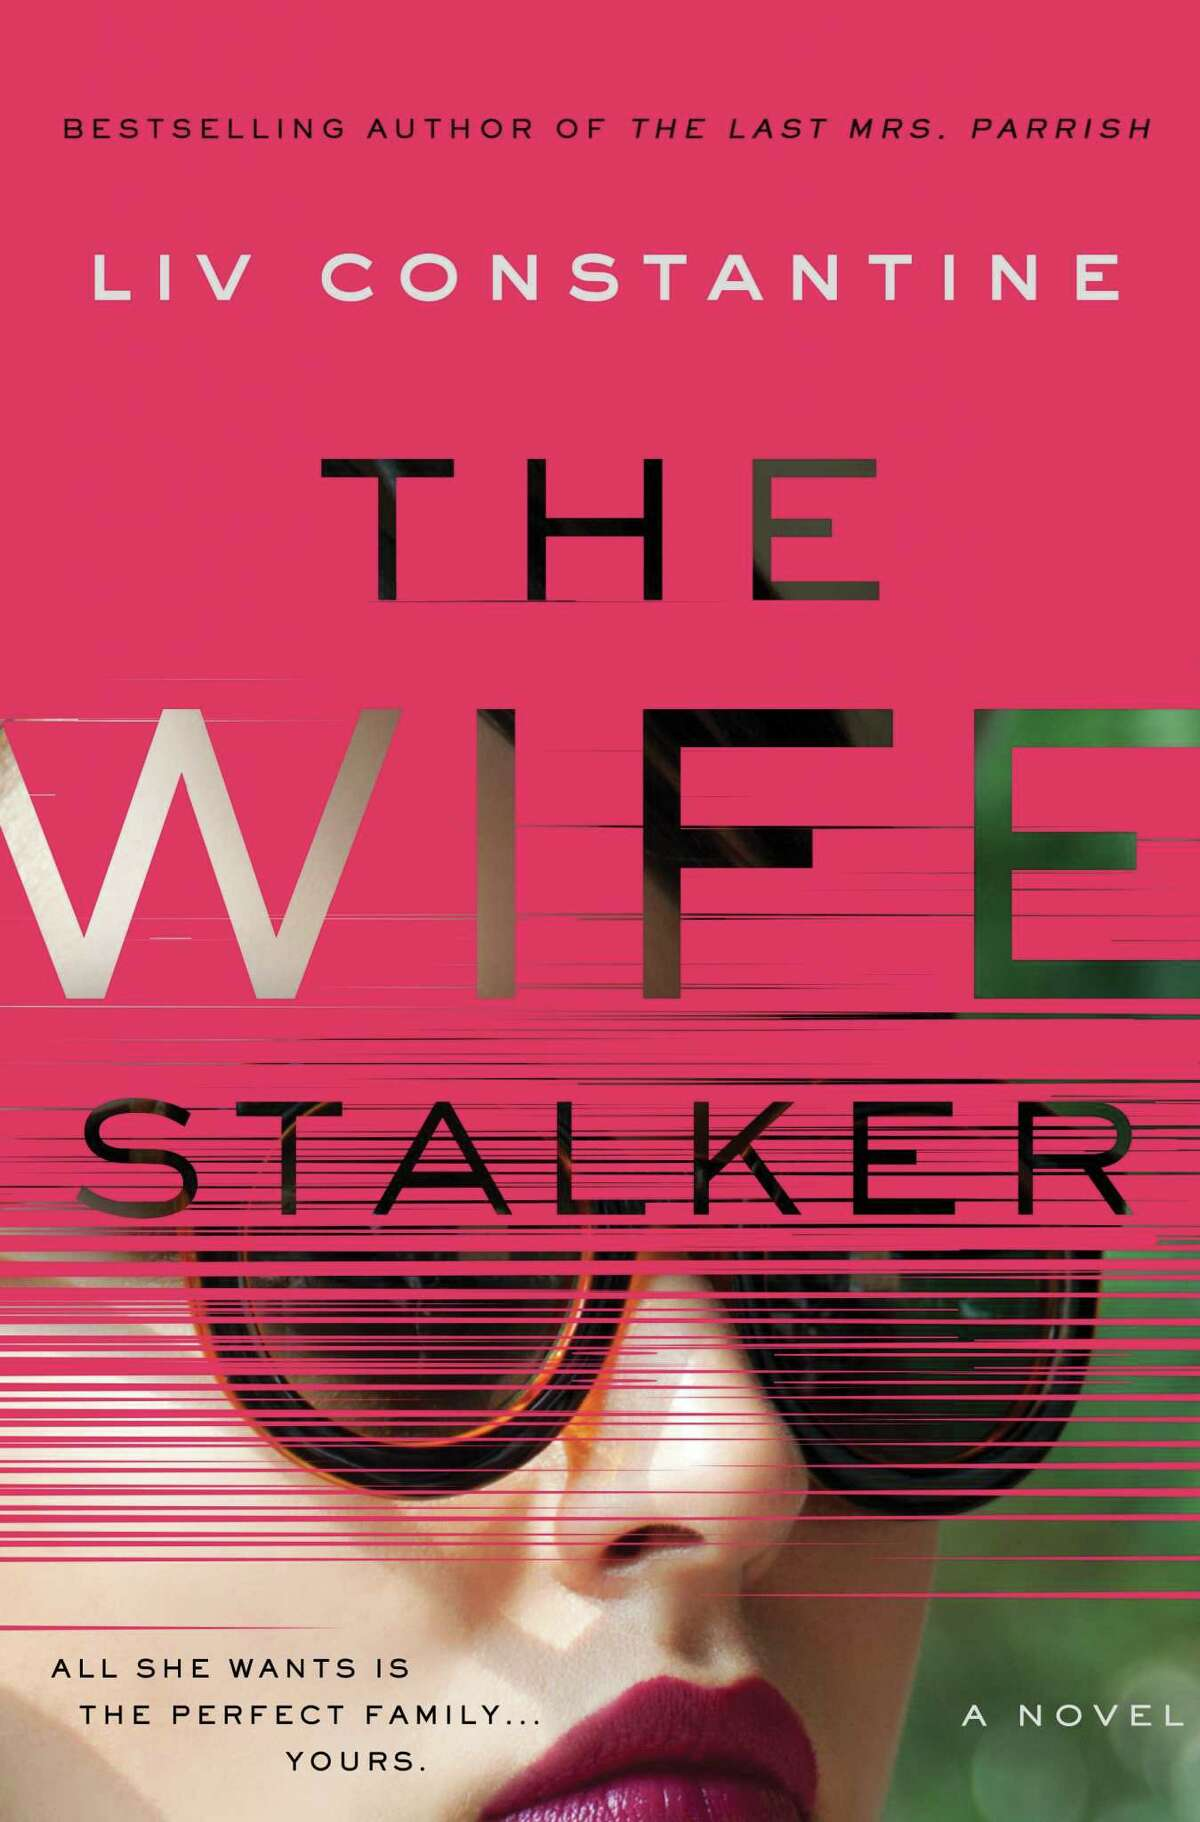 """""""The Wife Stalker"""" is the latest book from authors Lynne Constantine and her sister Valerie Constantine who write under the pen name Liv Constantine."""